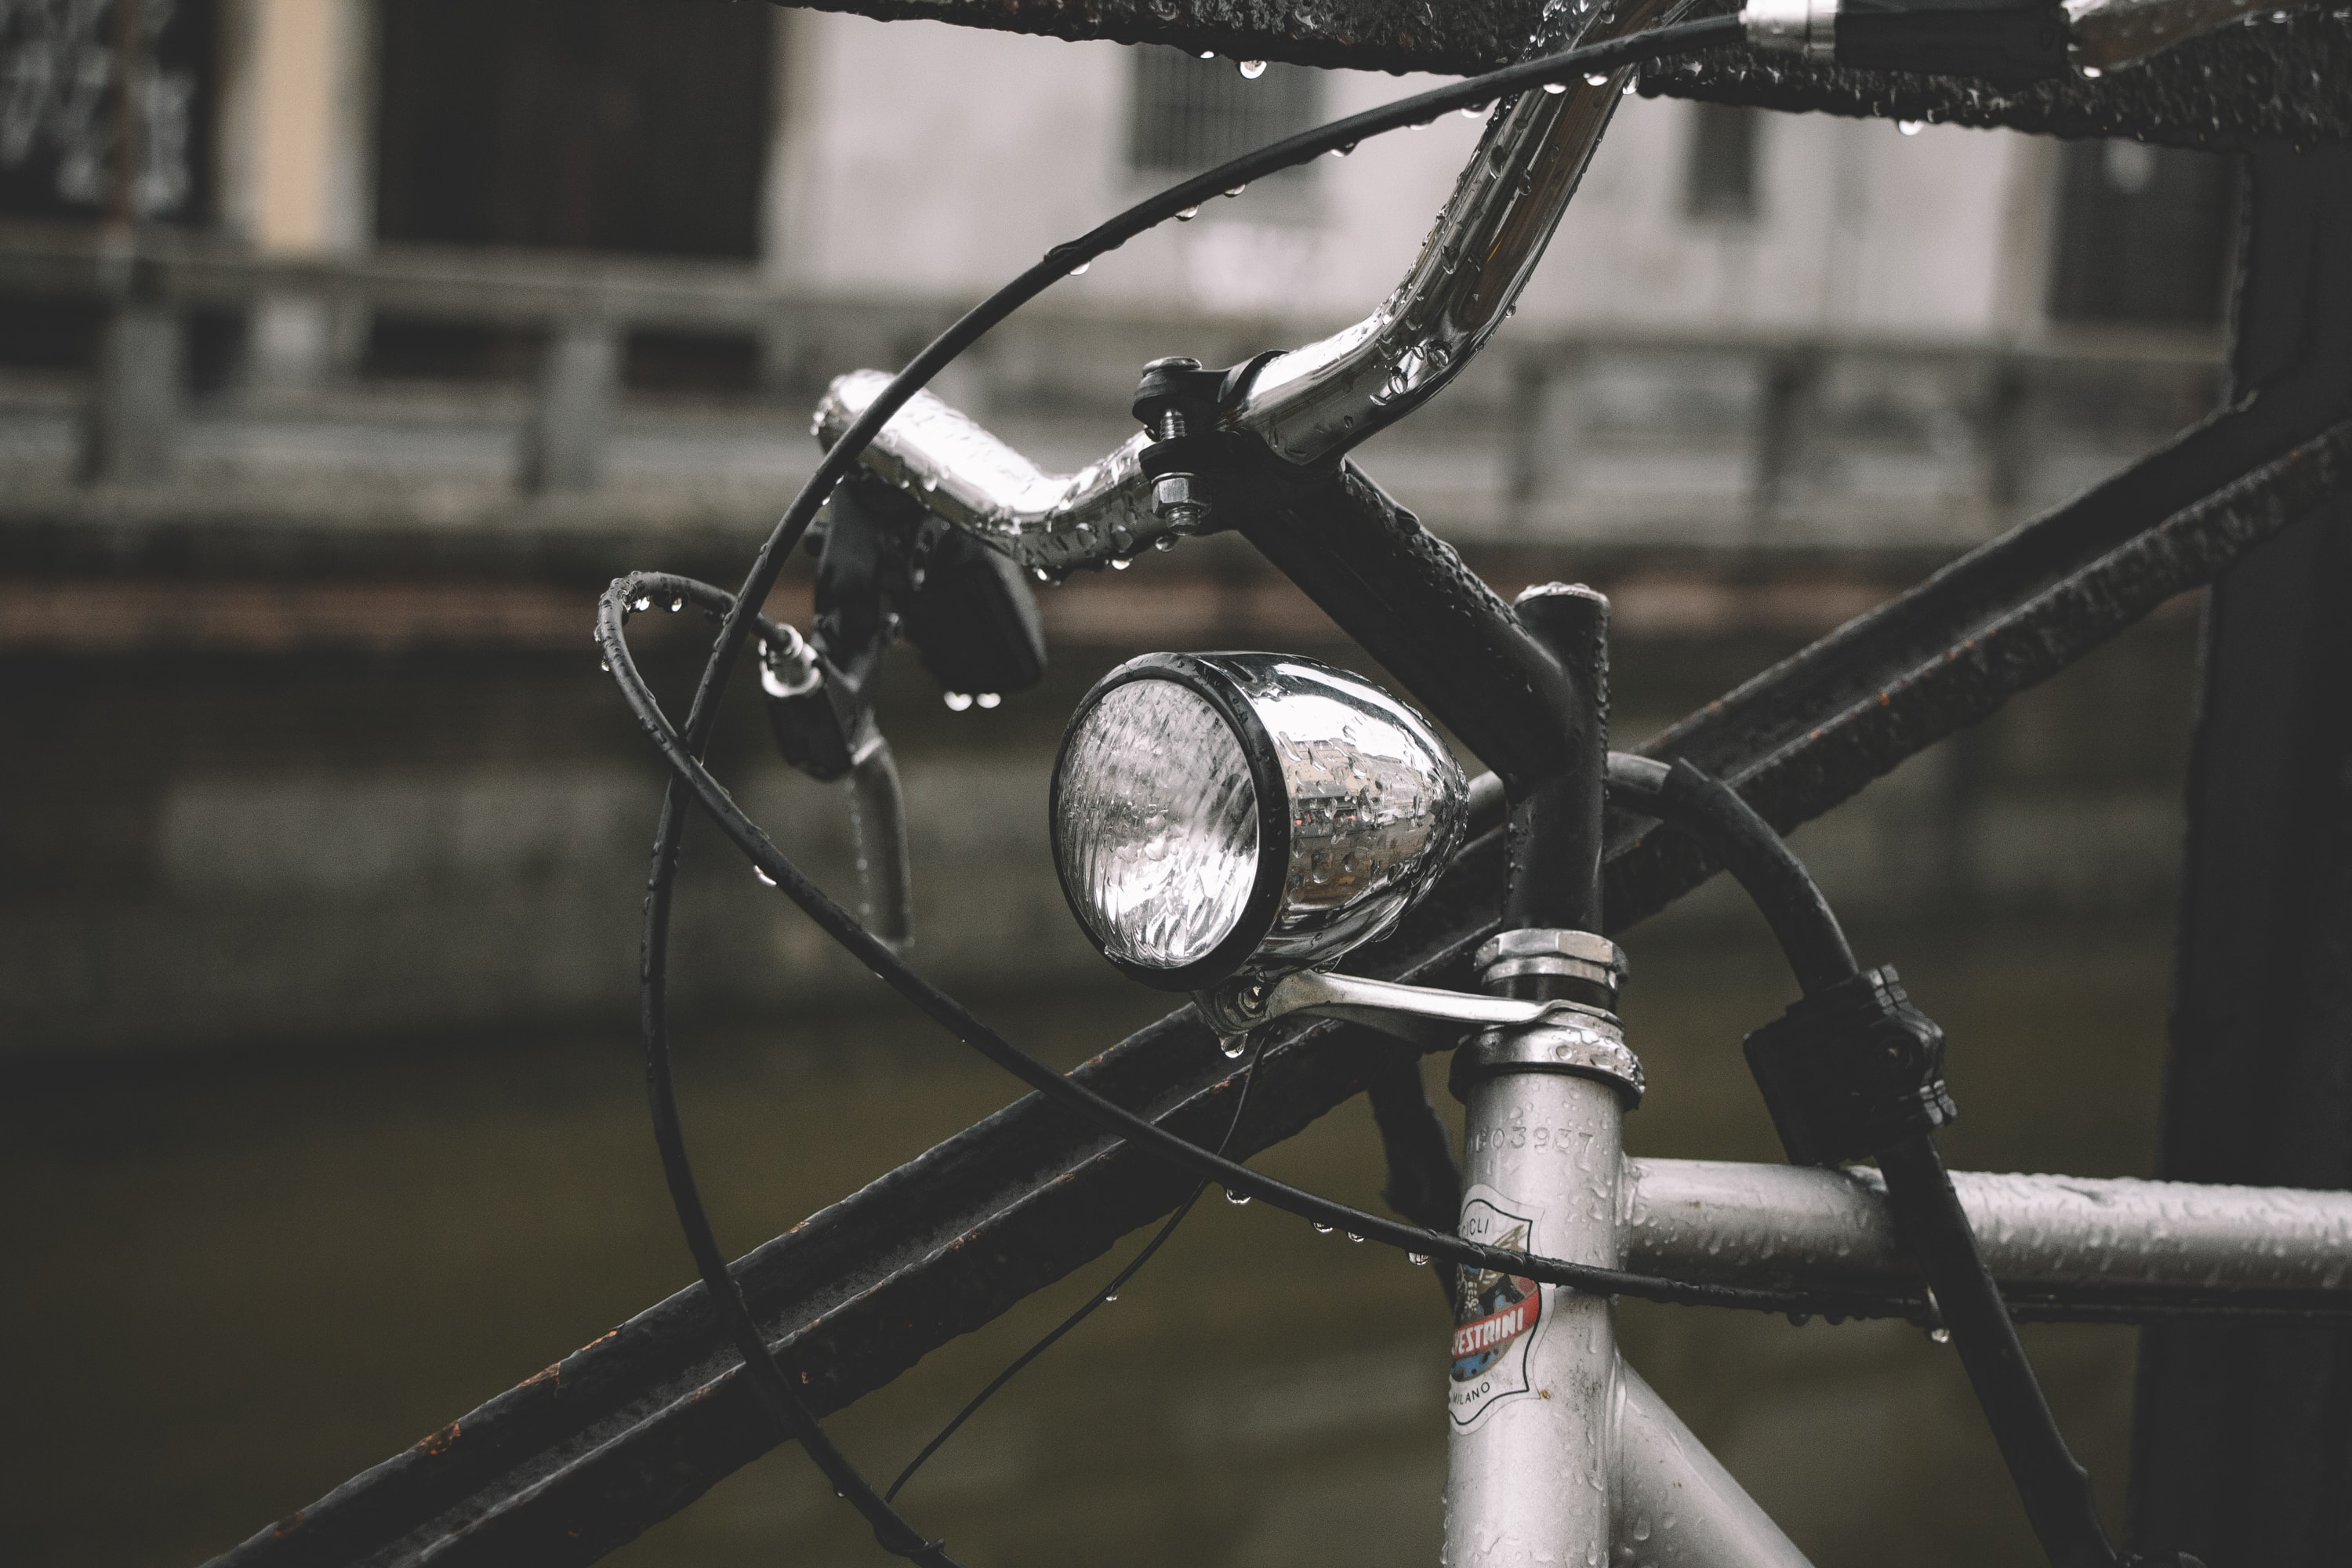 Headlight on a bicycle on a rainy day in the city